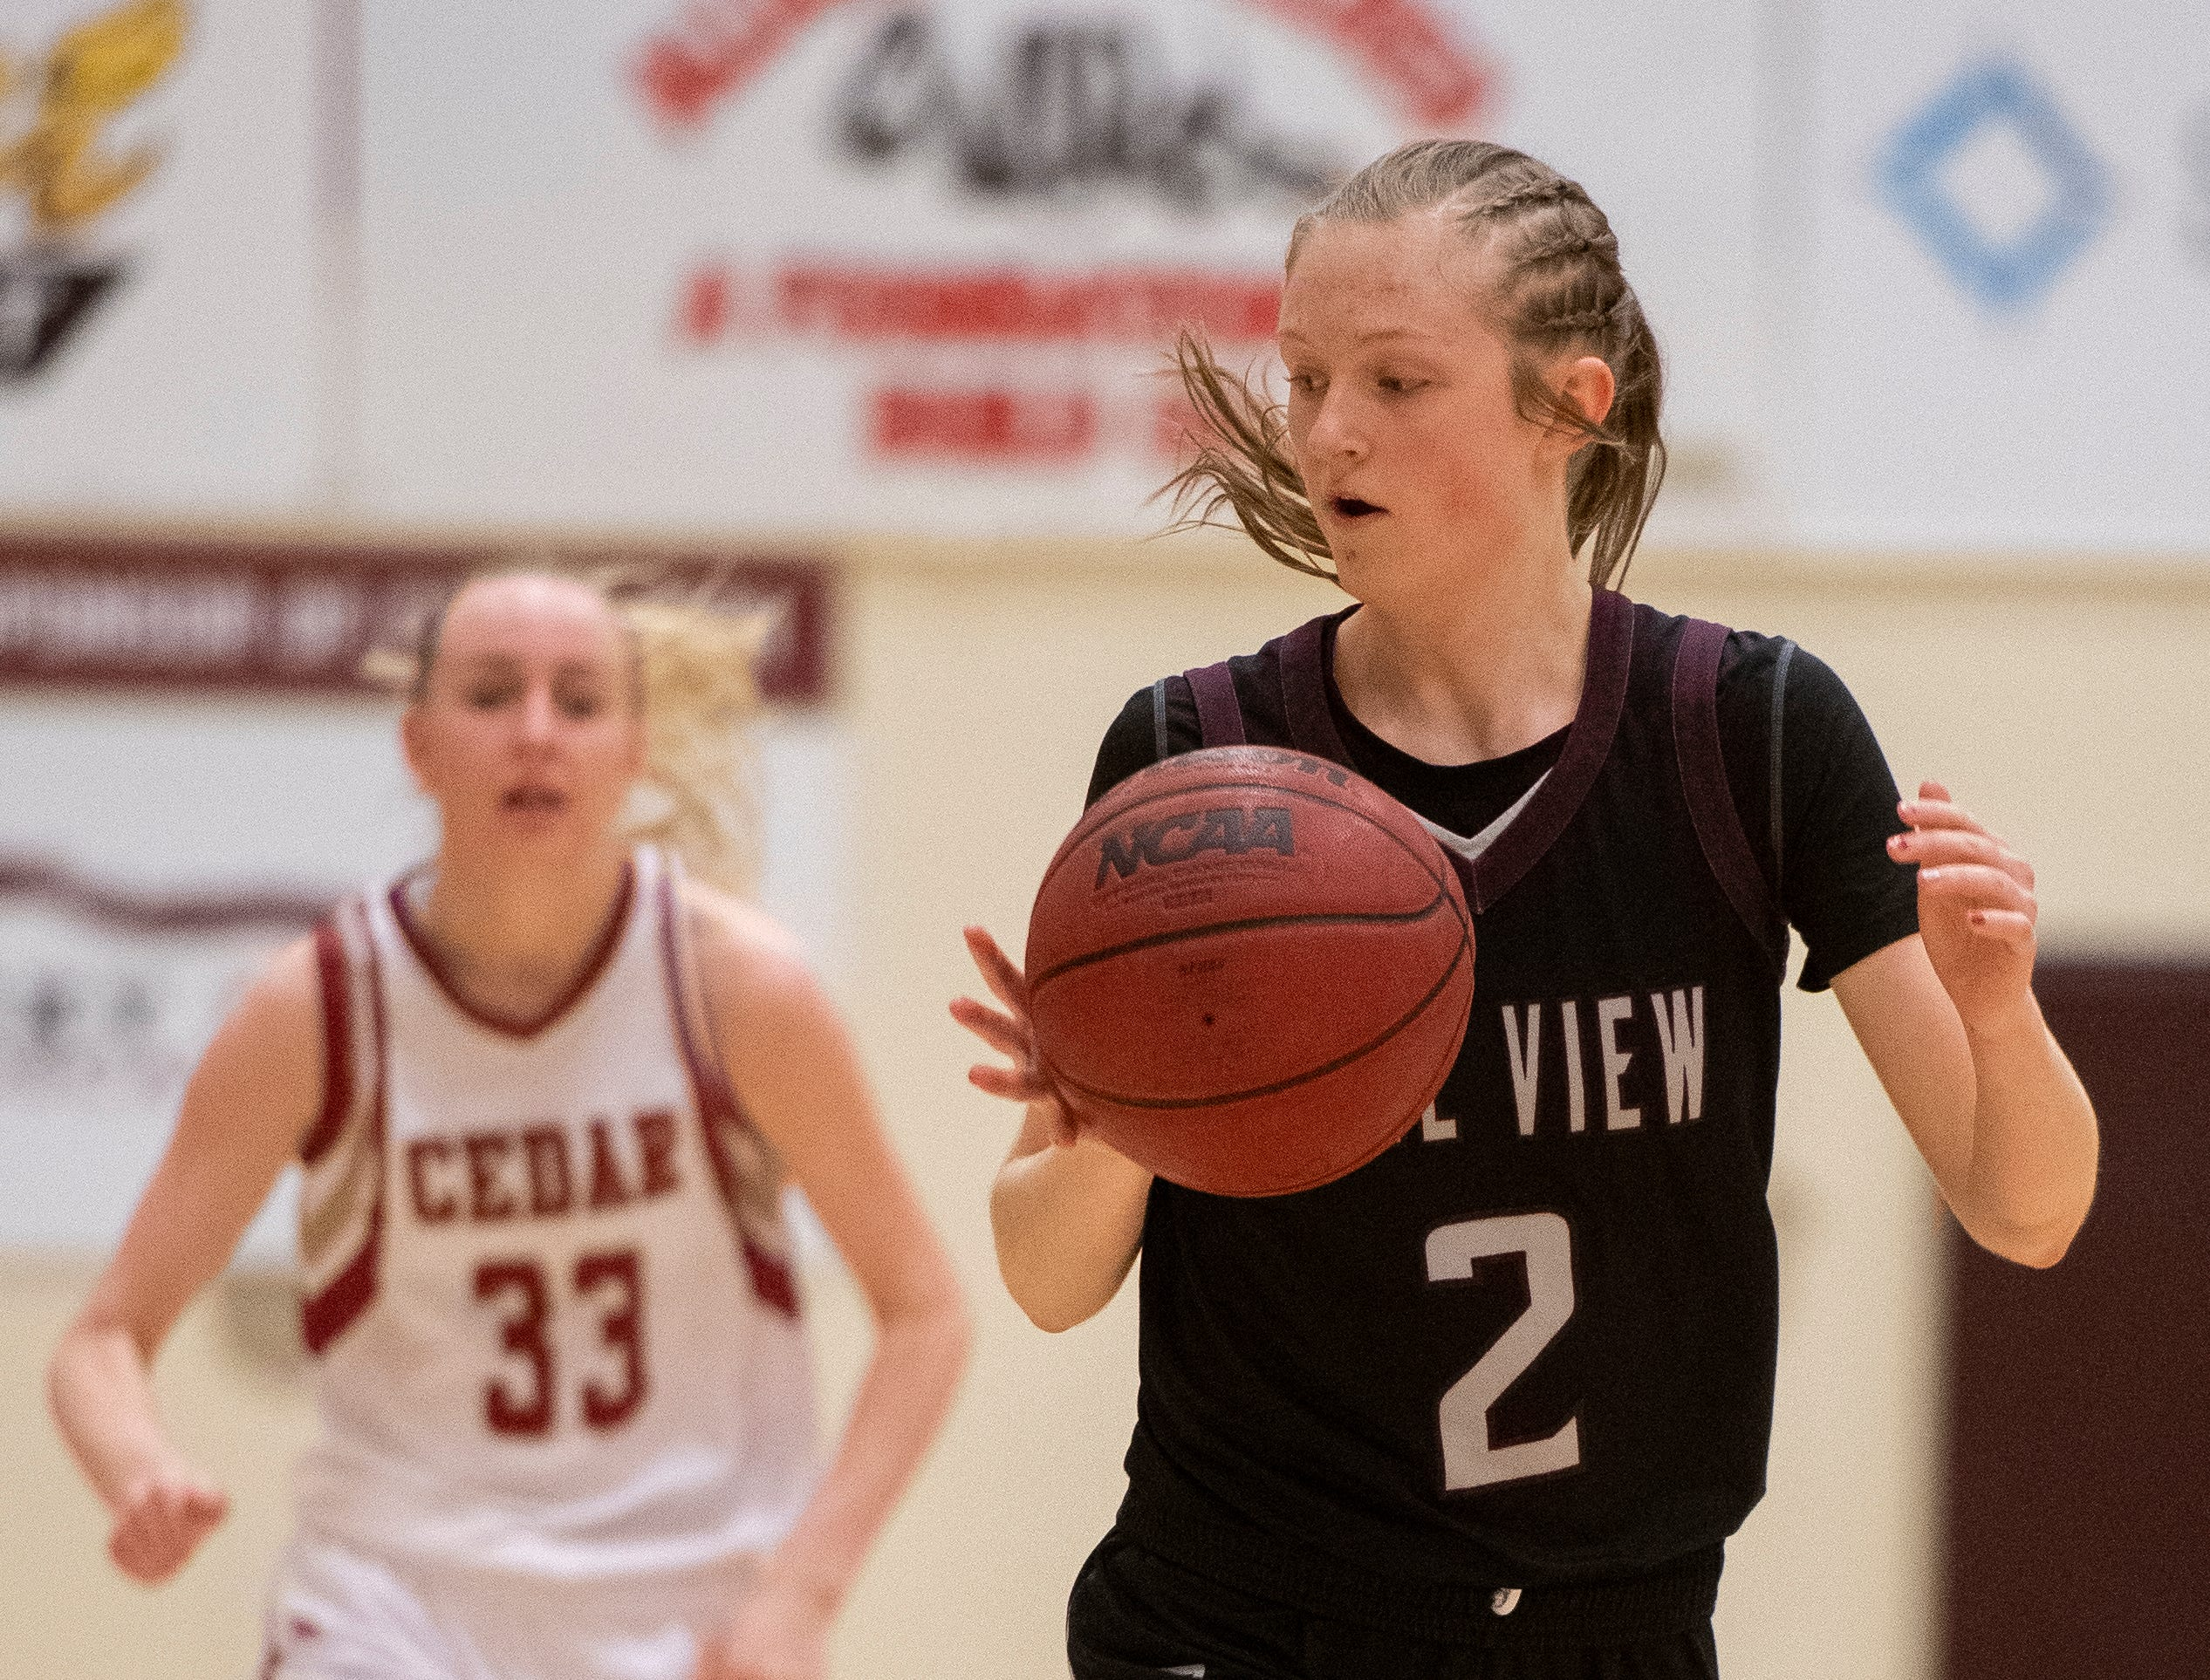 Pine View High School junior Ellie Wilson (2) moves the ball against Cedar High at CHS Tuesday, January 8, 2019. Cedar remains undefeated with a 63-40 win over the Panthers.